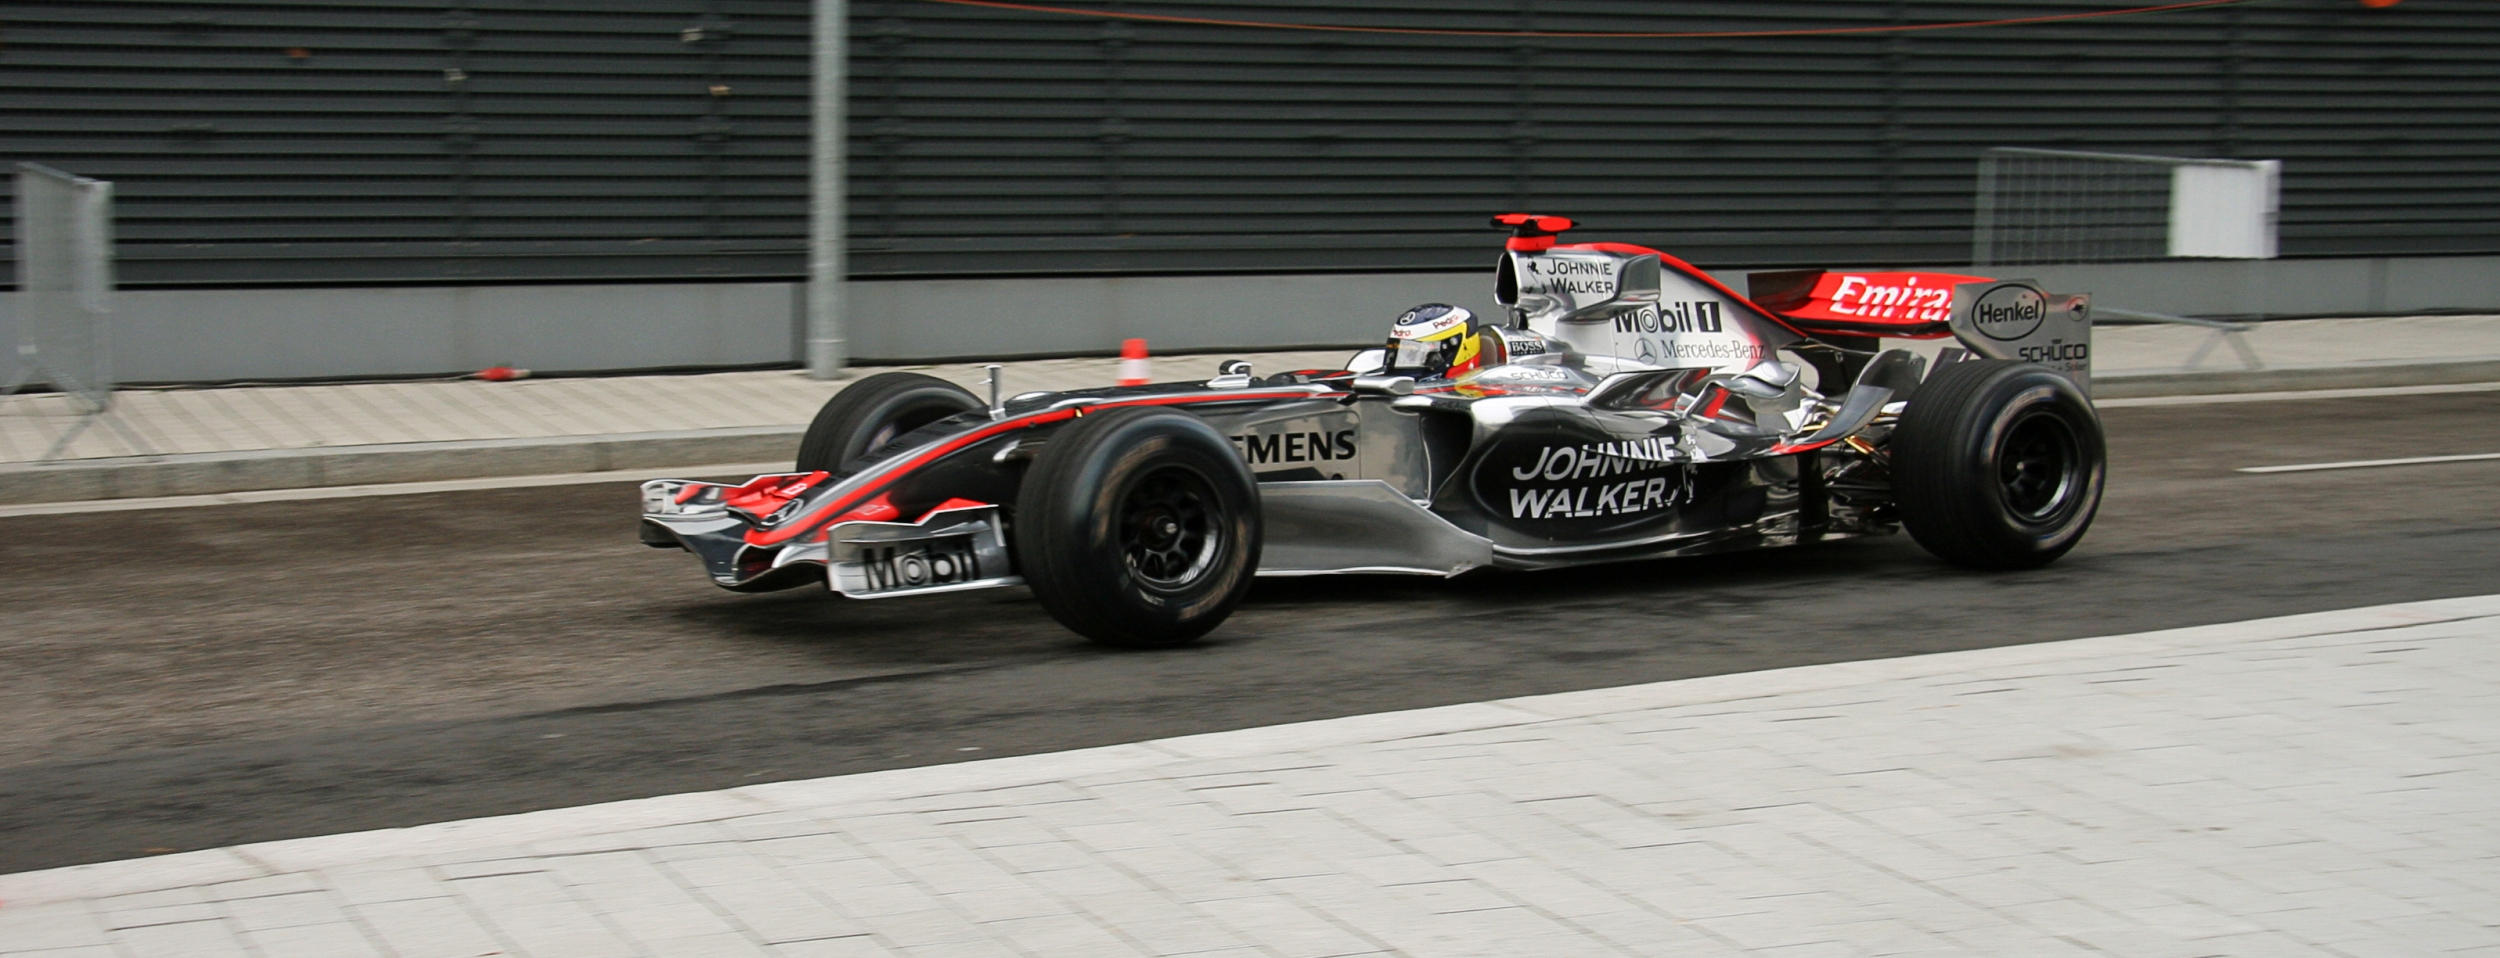 datei:f1 car mclarenmercedes 2006 – wikipedia